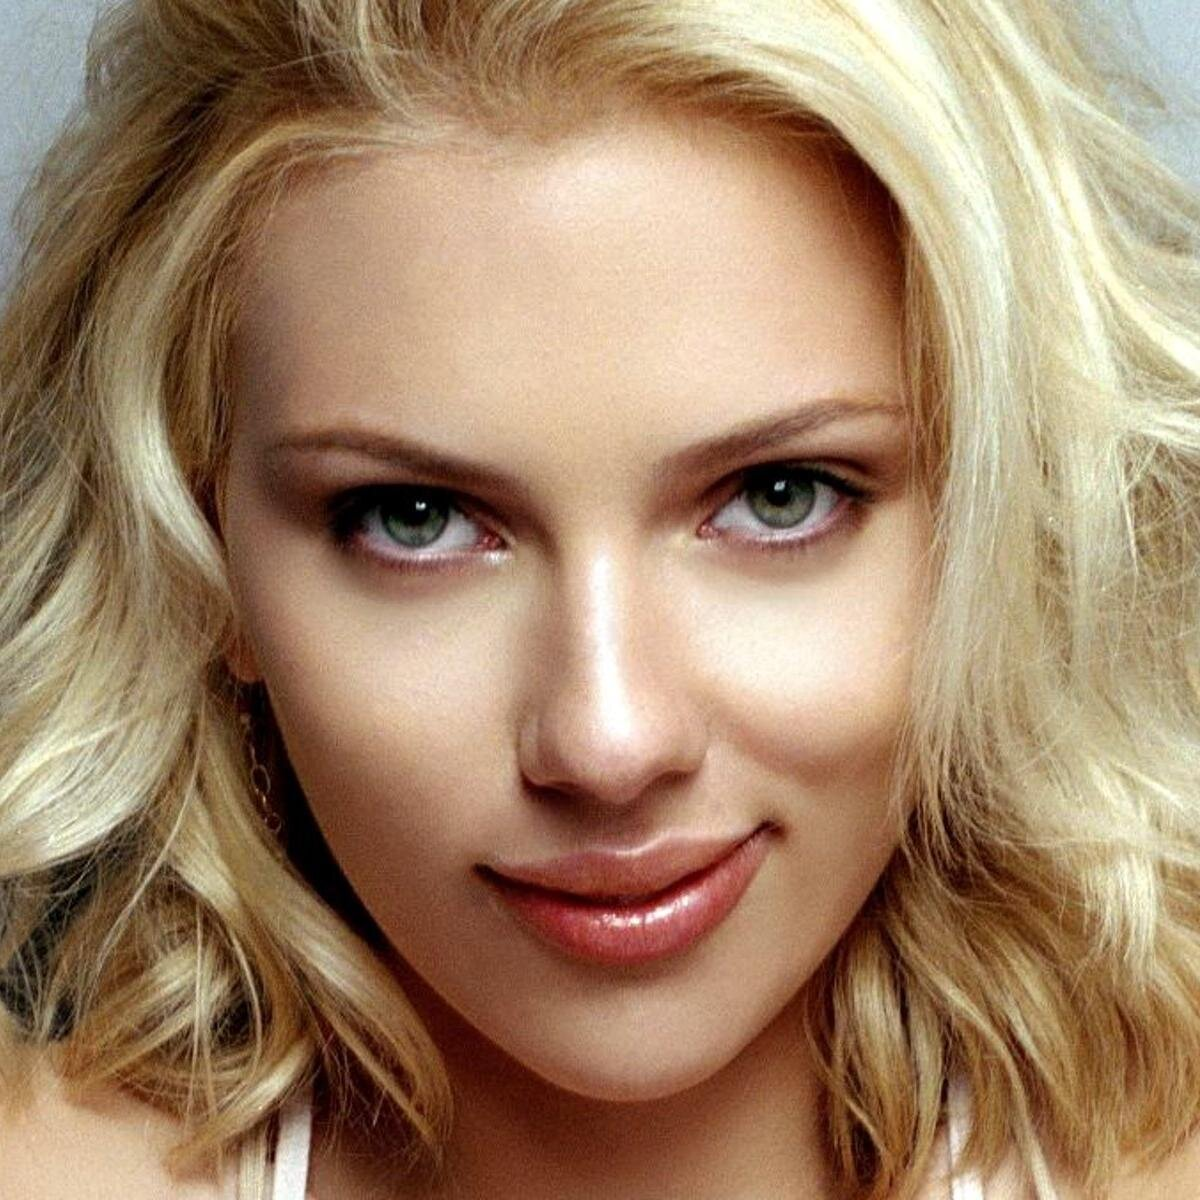 Twitter Scarlett Johansson nudes (14 foto and video), Sexy, Is a cute, Boobs, swimsuit 2018